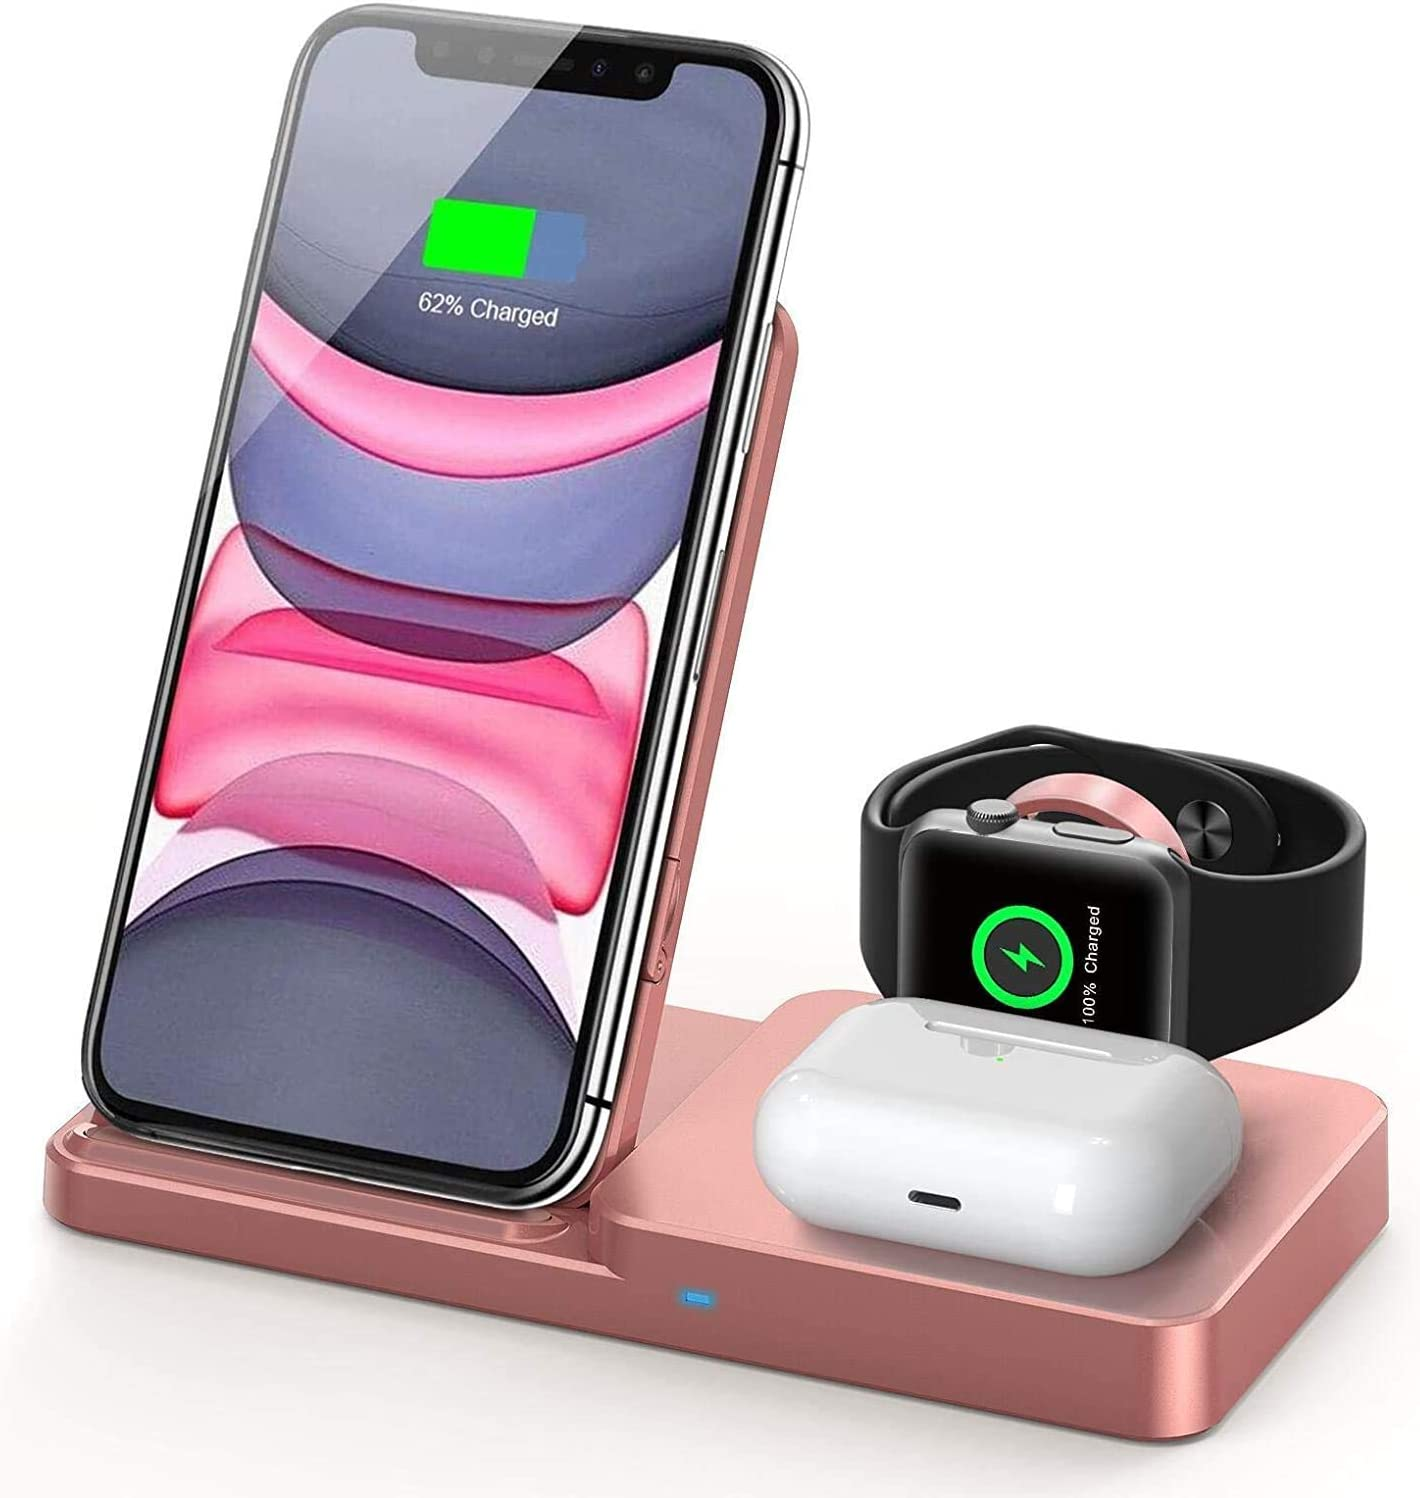 QI-EU Wireless Charger, Qi-Certified Fast Wireless Charging Station for AirPods/Apple Watch Series/iPhone 12/11/11 pro/11 Pro Max/XS/XS Max/XR/8/8 Plus/SE,Adjust Wireless Charging Stand for Samsung